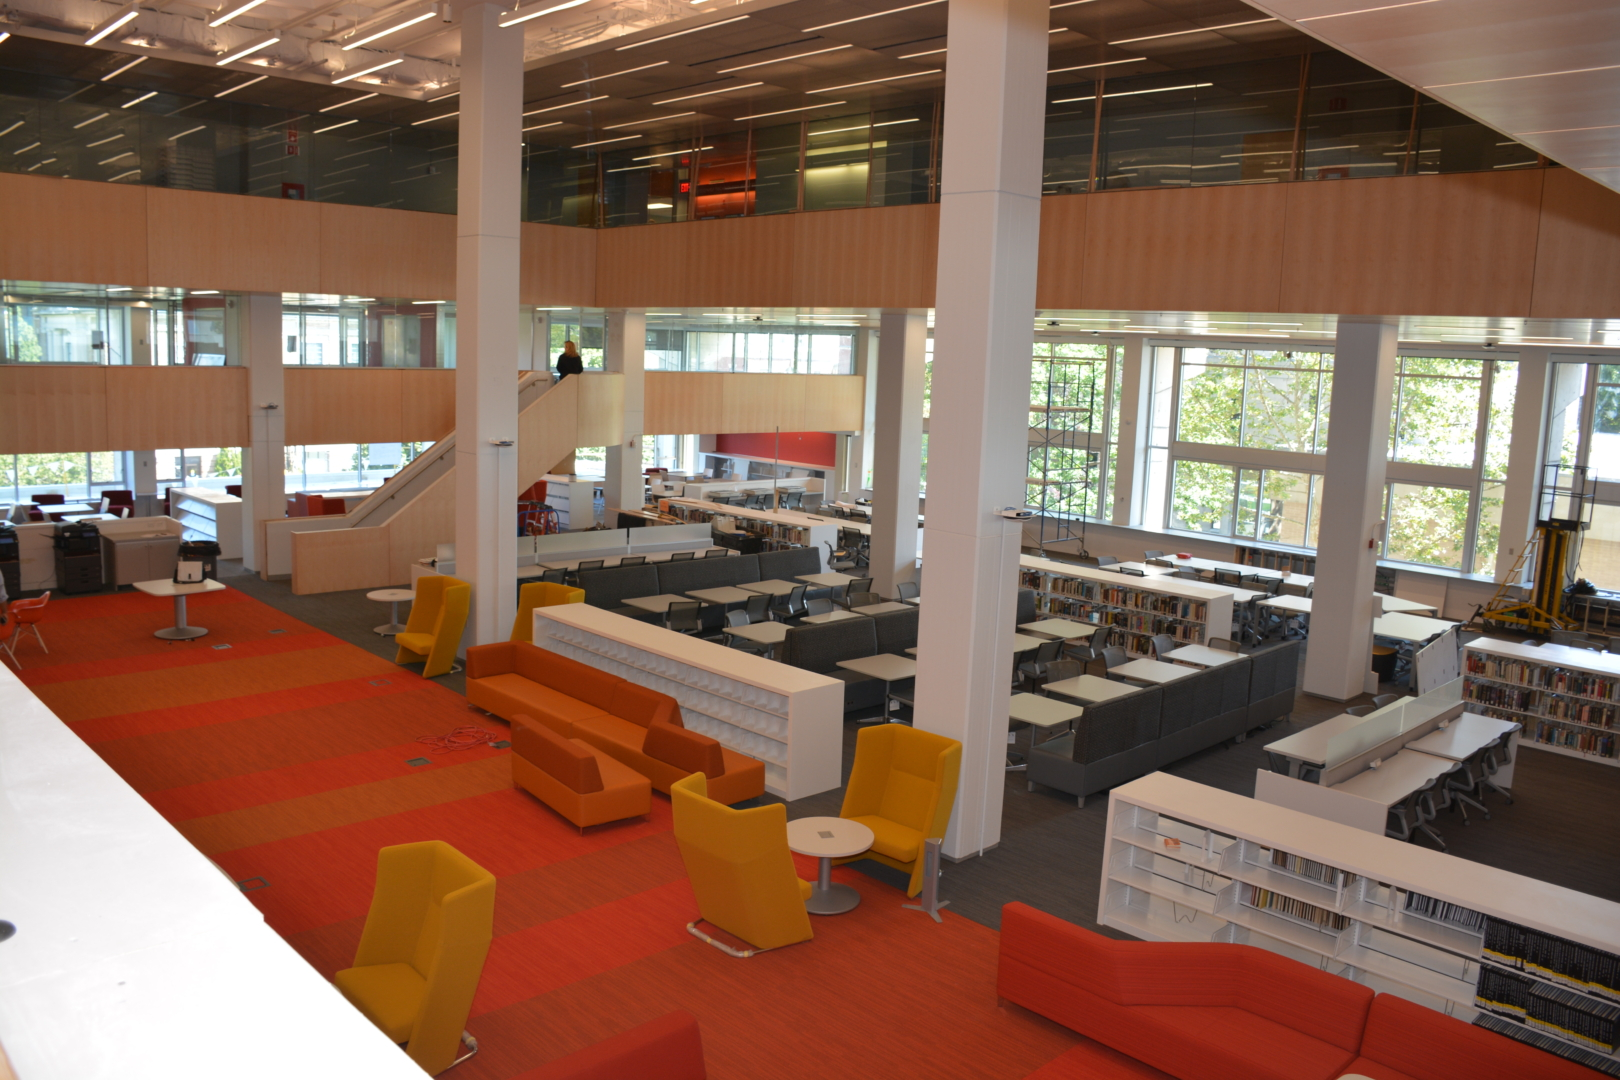 Wentworth's Douglas D. Schumann Library & Learning Commons